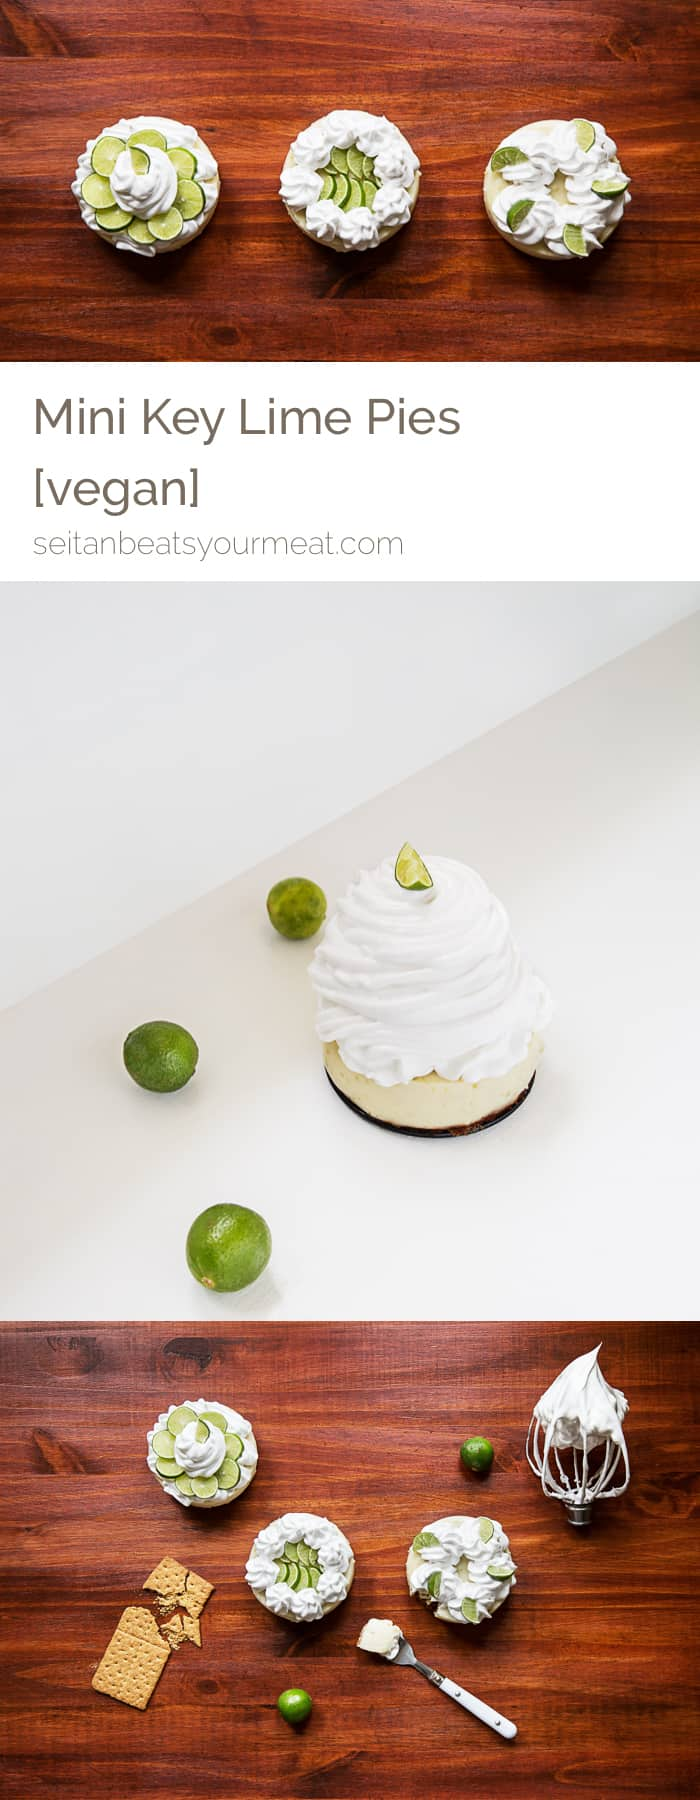 Vegan mini key lime pies with aquafaba whipped topping | Seitan Beats Your Meat